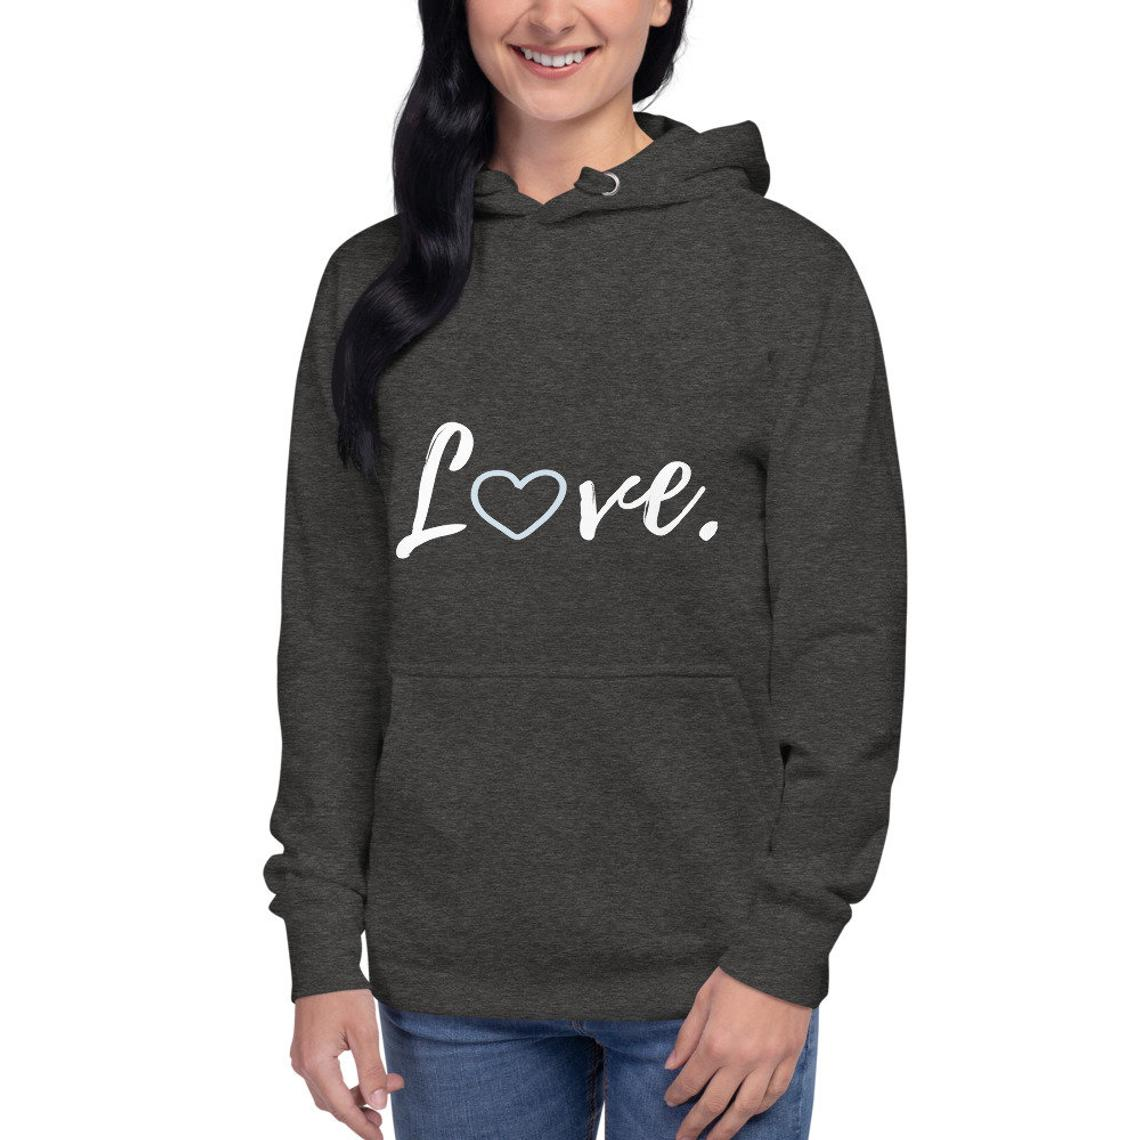 Love Sweatshirt from Mathi Shop